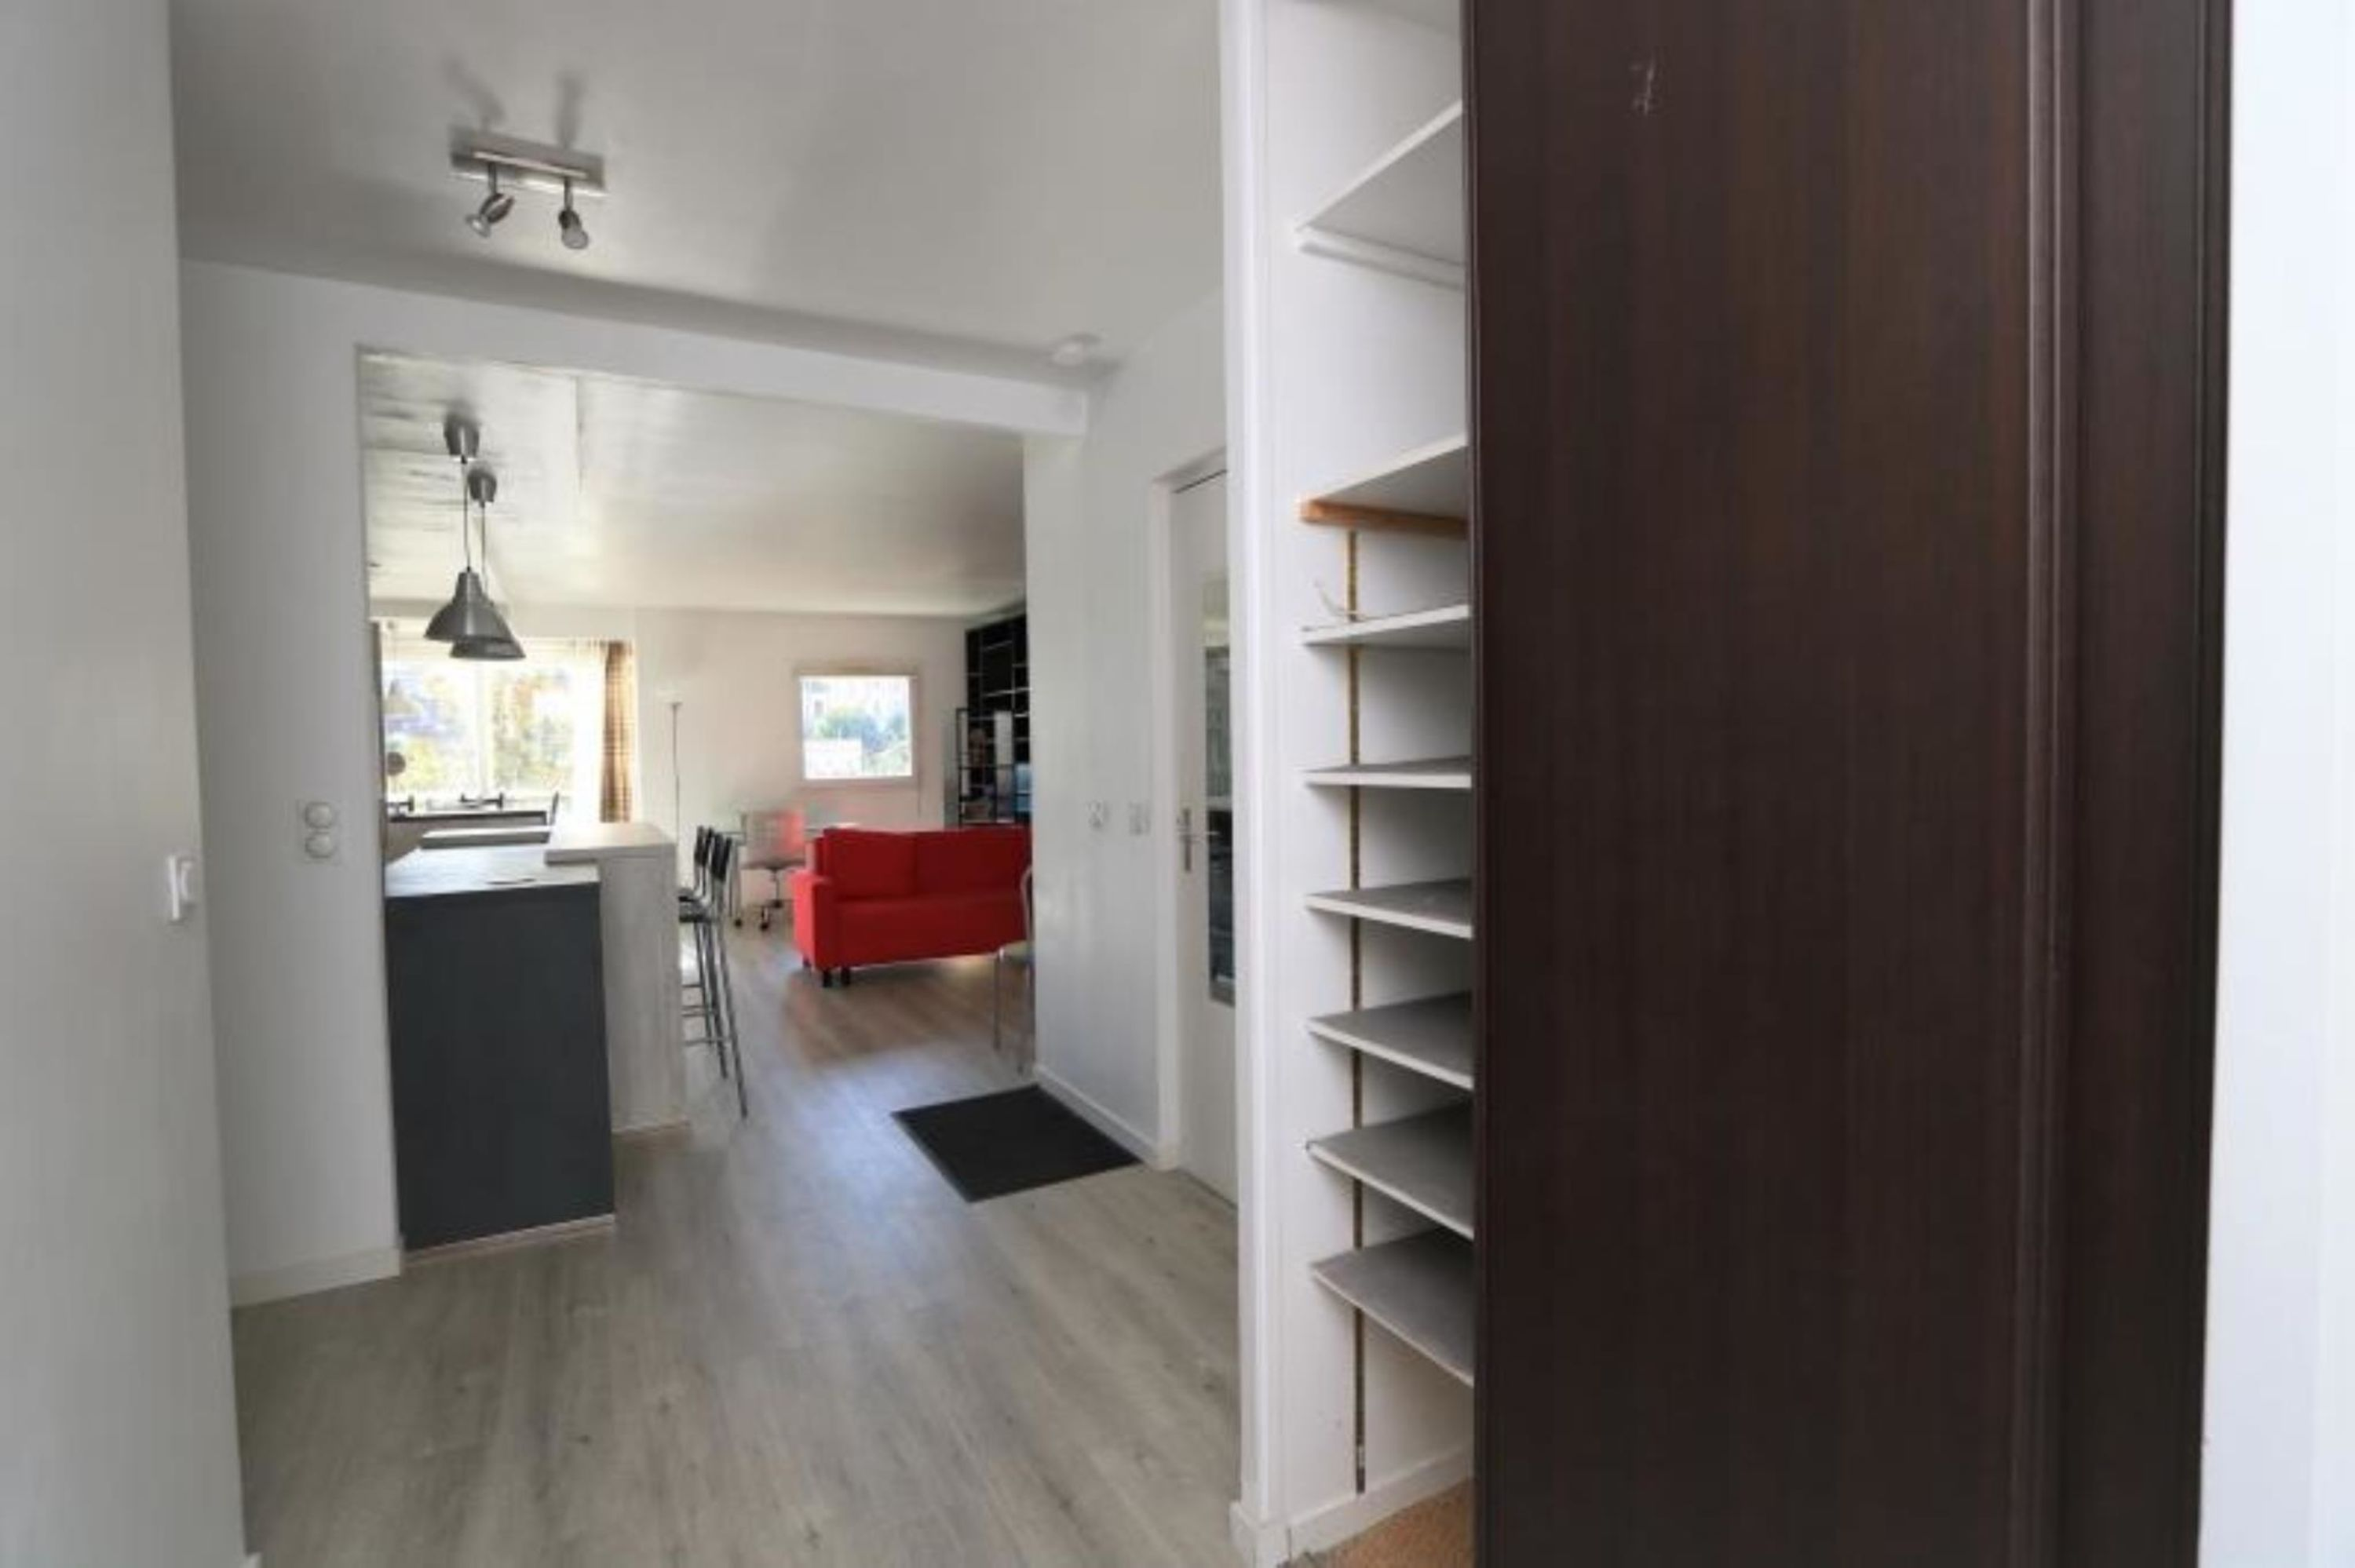 agence immobilière sevres 92 le chesnay 78 achat vente location appartement maison immobilier LMHT ANF PEHZPDUI